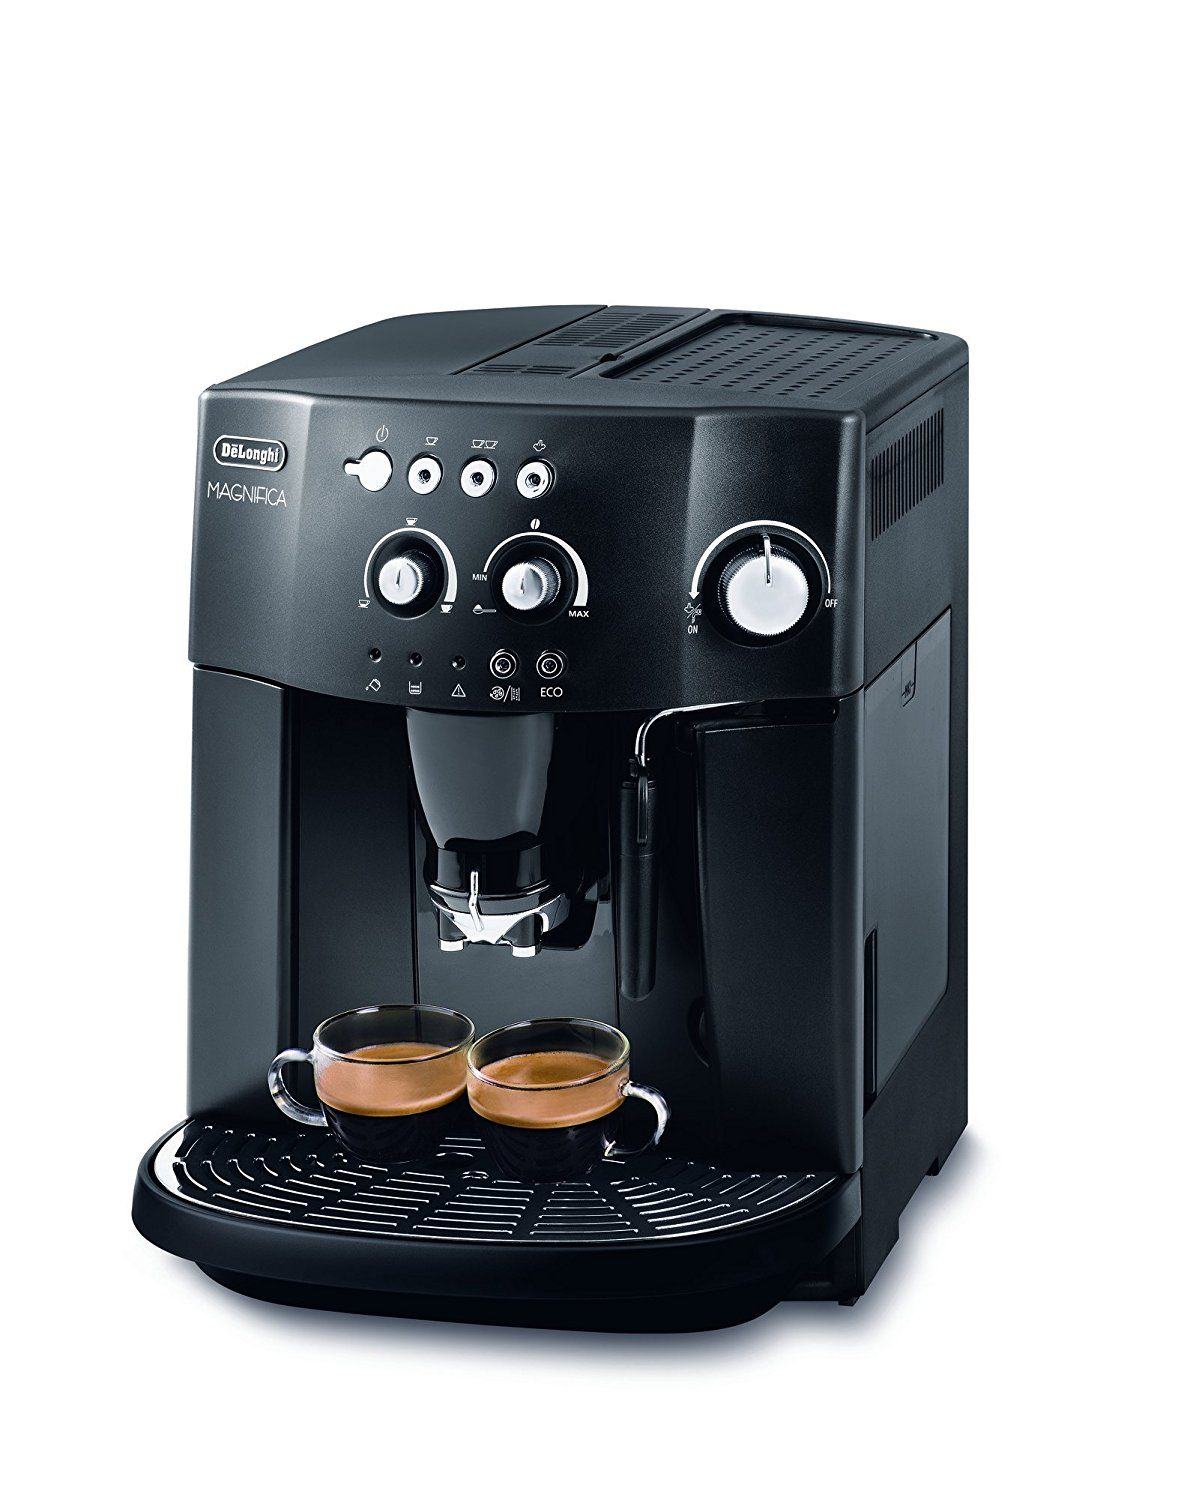 de 39 longhi magnifica esam4200 coffee machine uk review the perfect grind. Black Bedroom Furniture Sets. Home Design Ideas